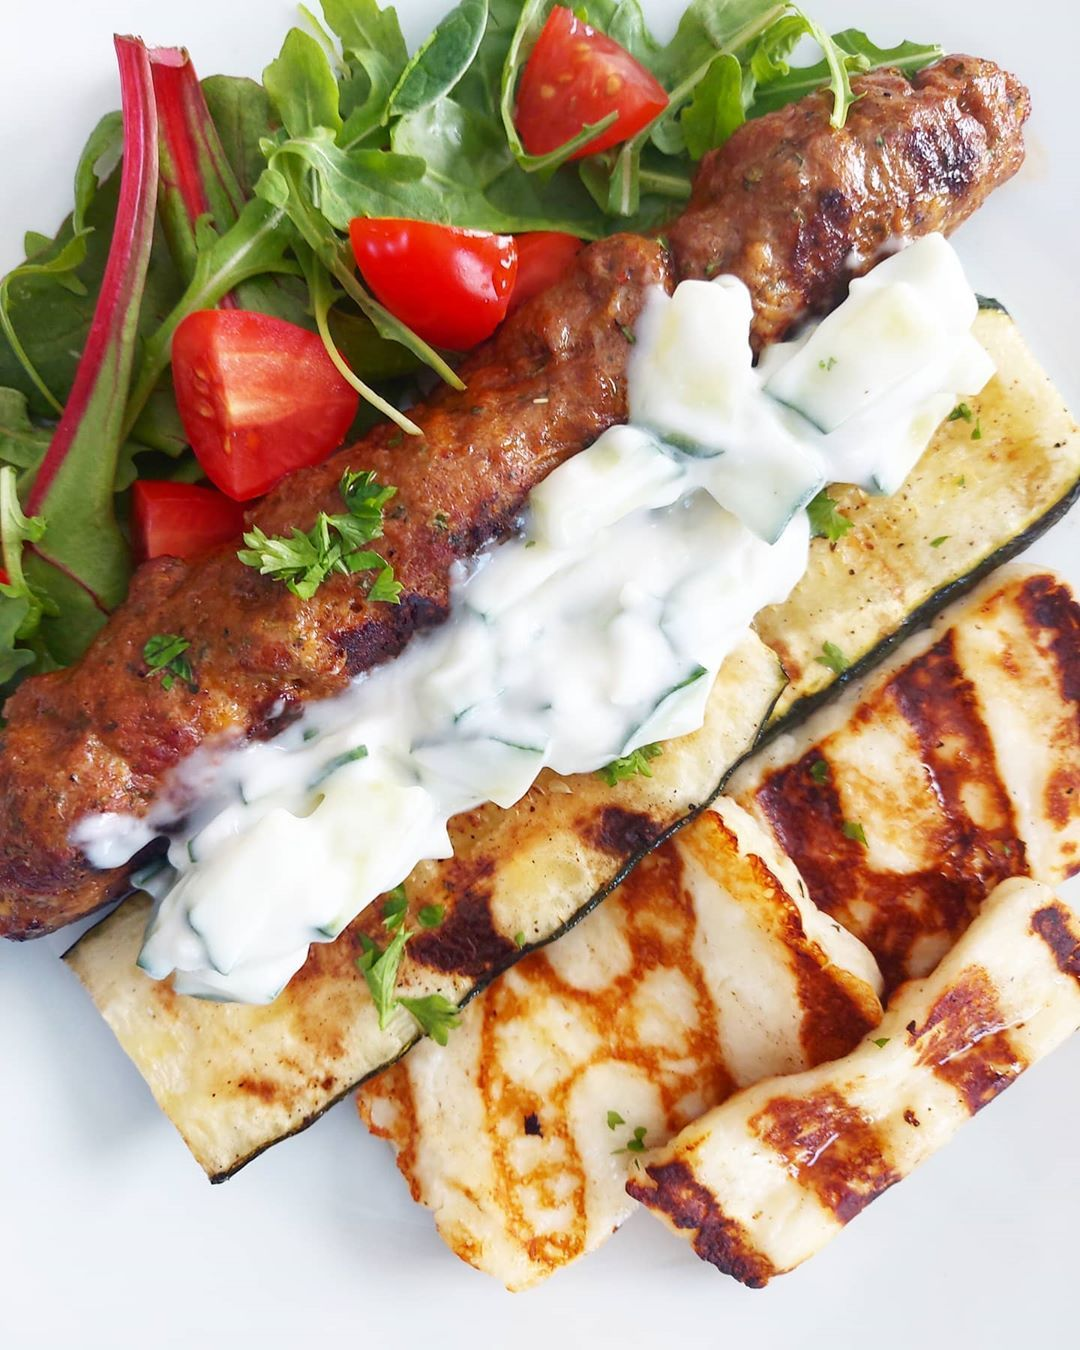 Kebab anyone? Today's sunny  and time for bbq ! Seekh kebab w grilled lemon squash , halloumi , tzatziki n salad ♡ - #seekhkebab#bbq#halloumi#squash#veggies#delish#delicious#homemade#homecooking#hobbycook#foodie#foodlover#foodporn#picoftheday#friday#familydinner#familytime#sexyfood#bergen#norway